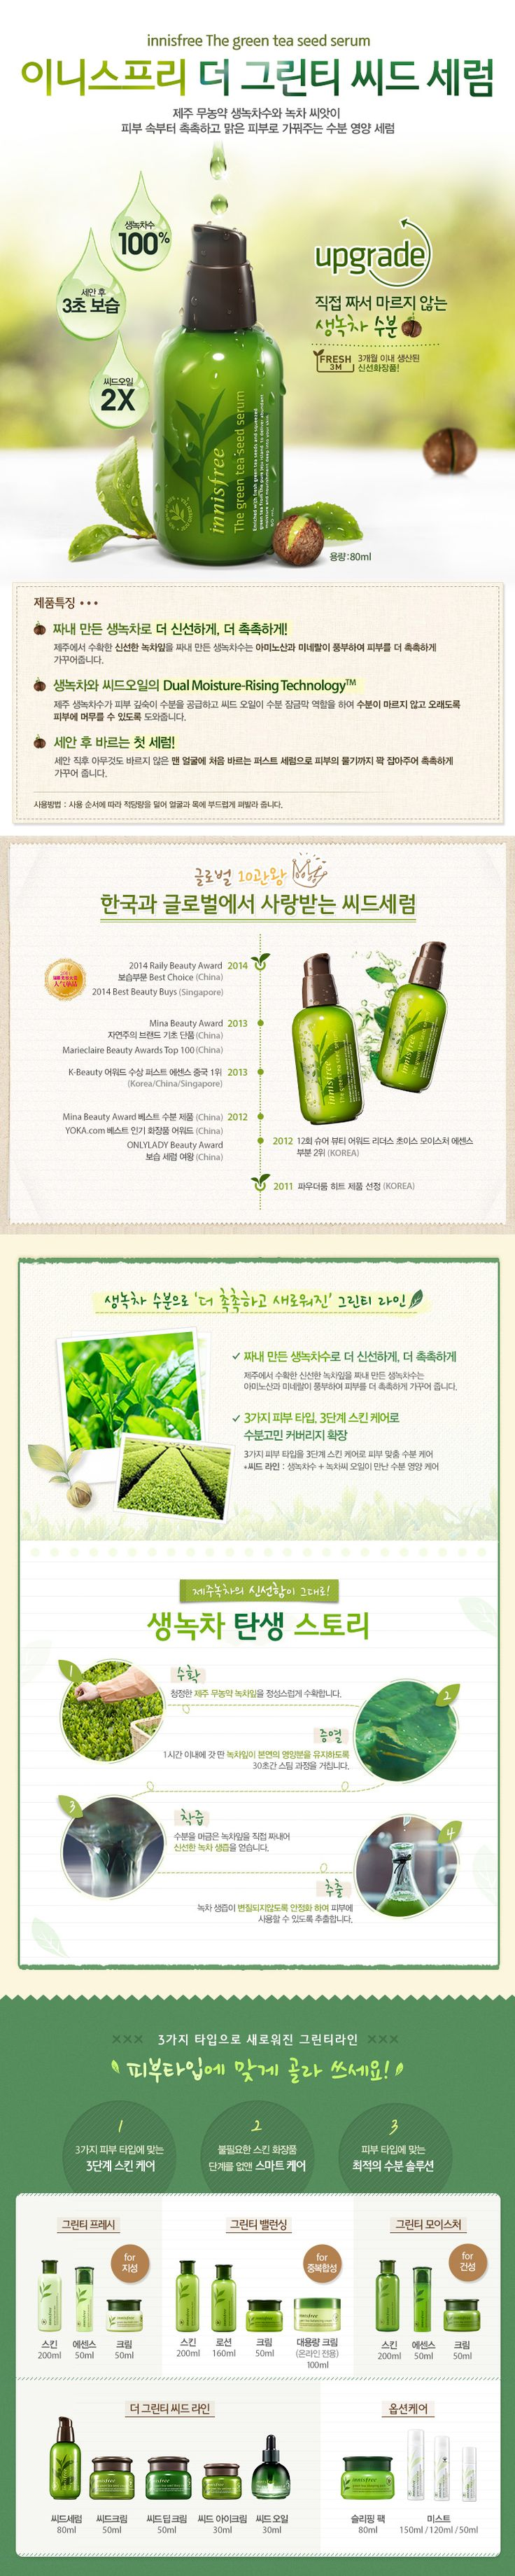 Natural benefit from Jeju, innisfree